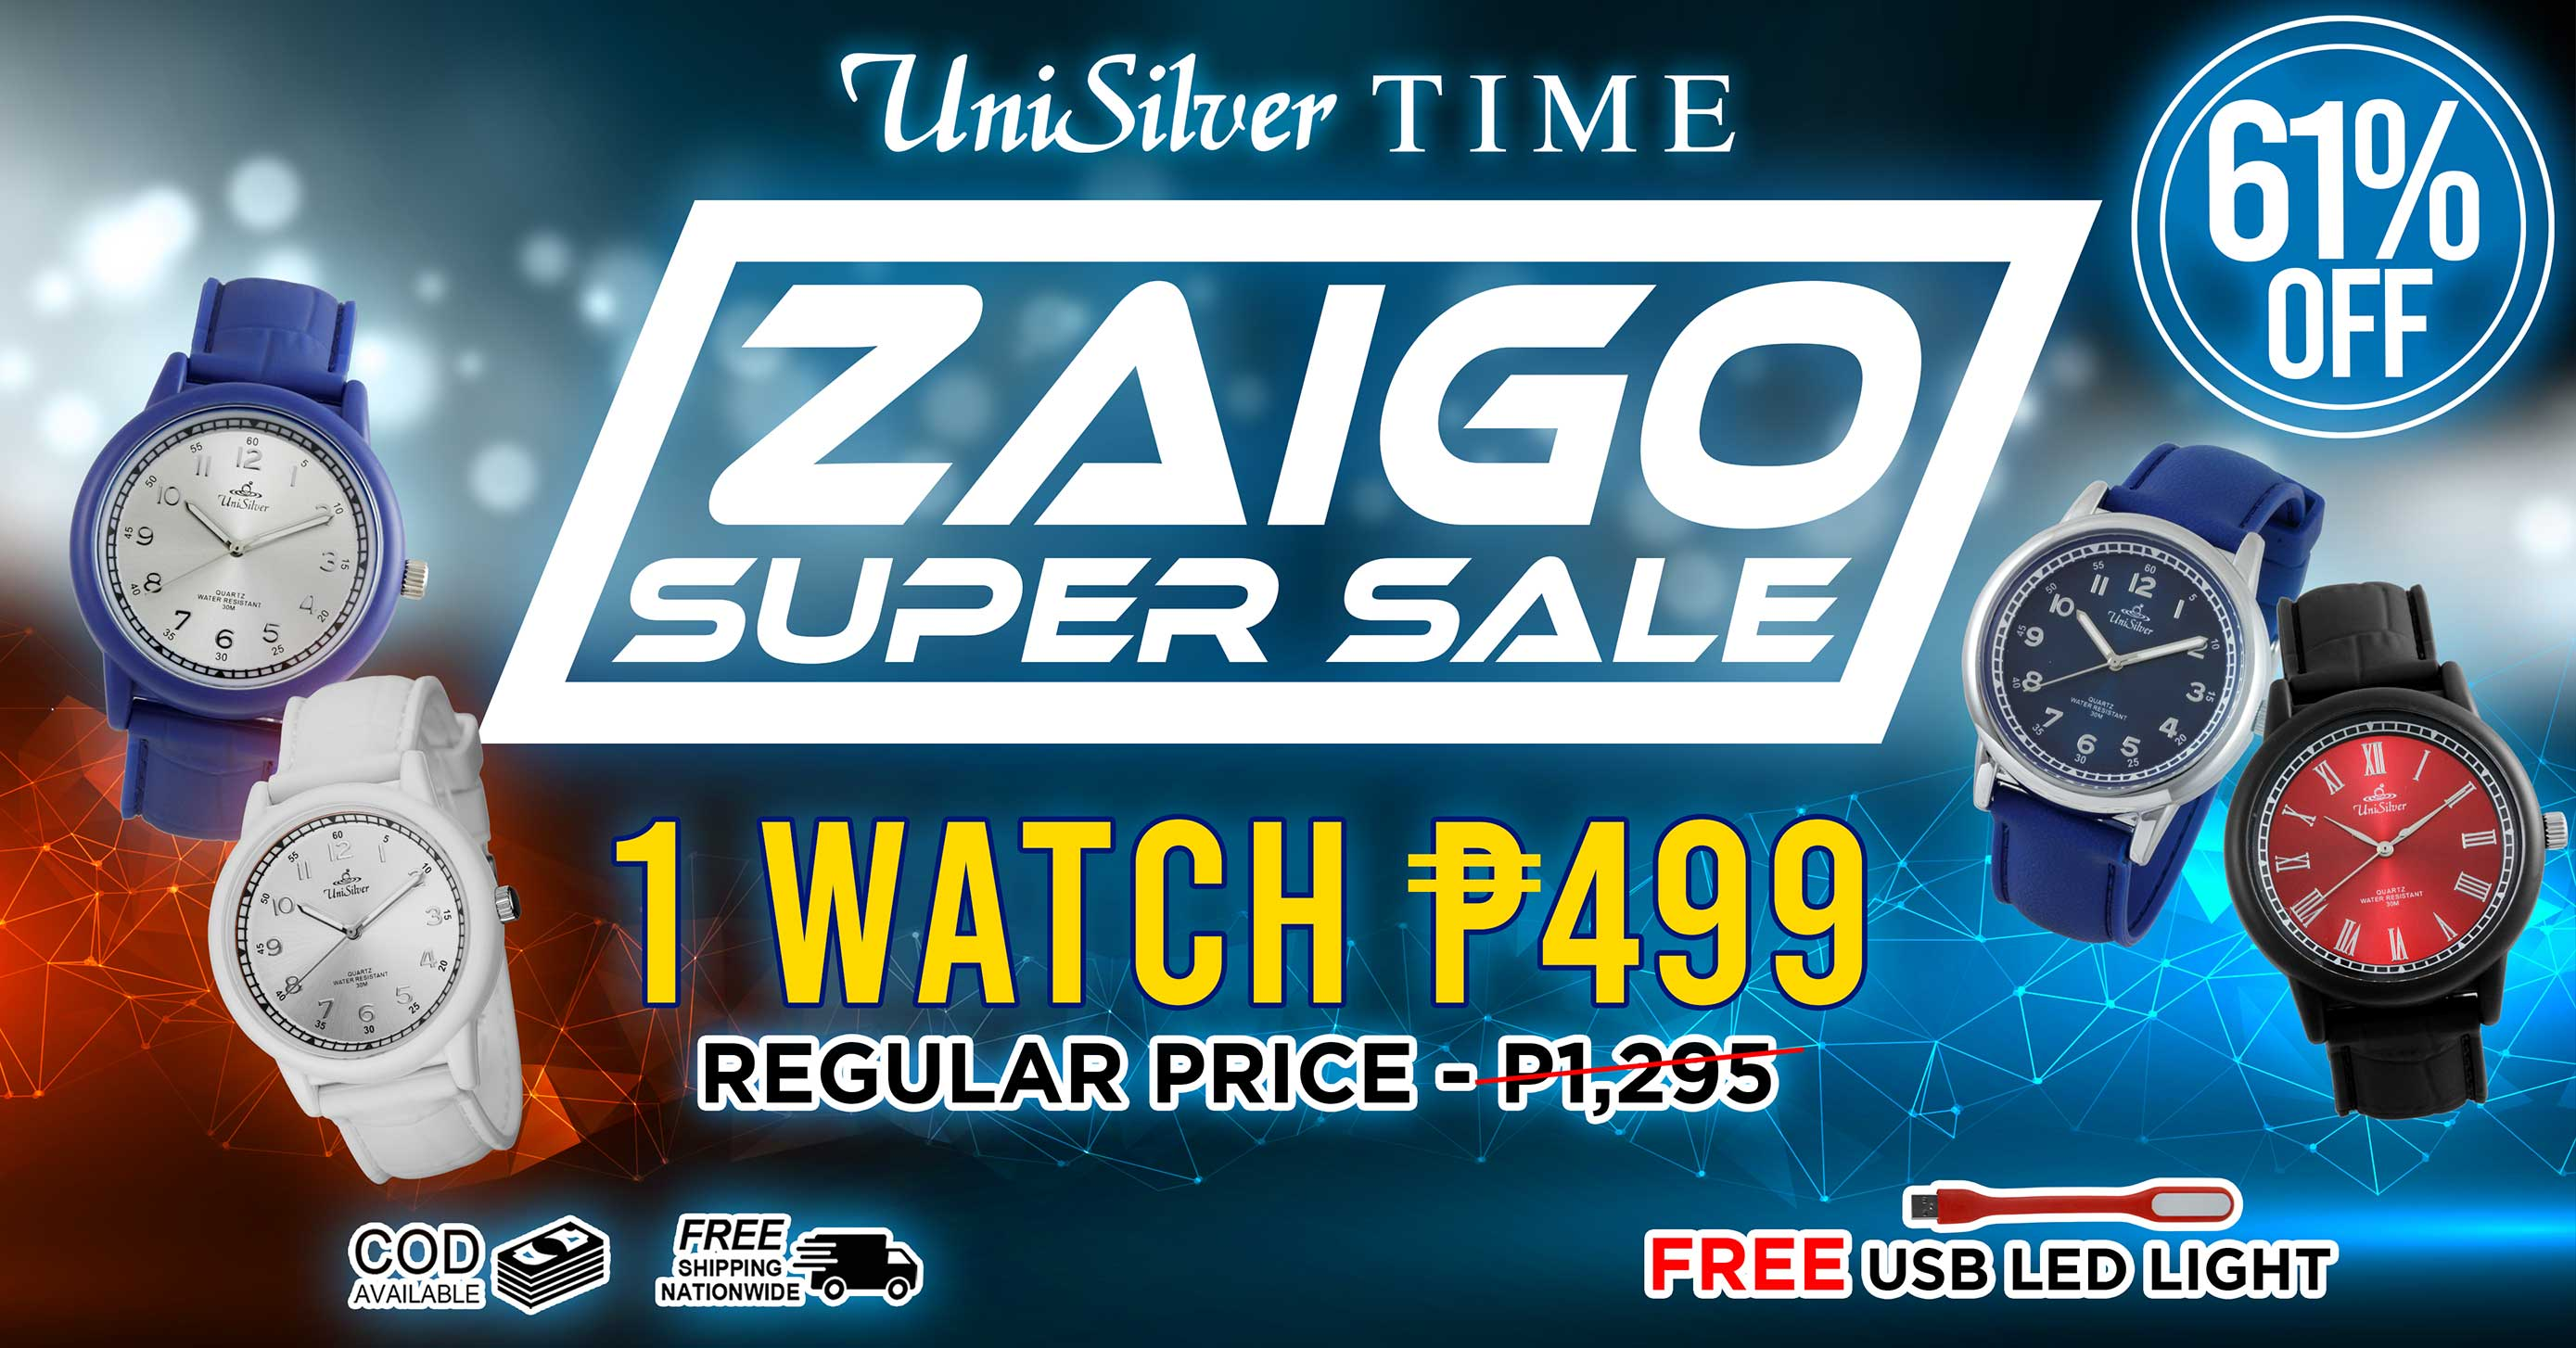 Your fashion just got an upgrade with the Zaigo Super Sale promo from UniSilver TIME!  P499 only!  That's 61% off from the average regular price of P1295  There are 17 designs available.  Free delivery and COD option available.  This promo is only available online http://www.unisilvertime.com/  Hurry order now >>> http://bit.ly/34pelOC